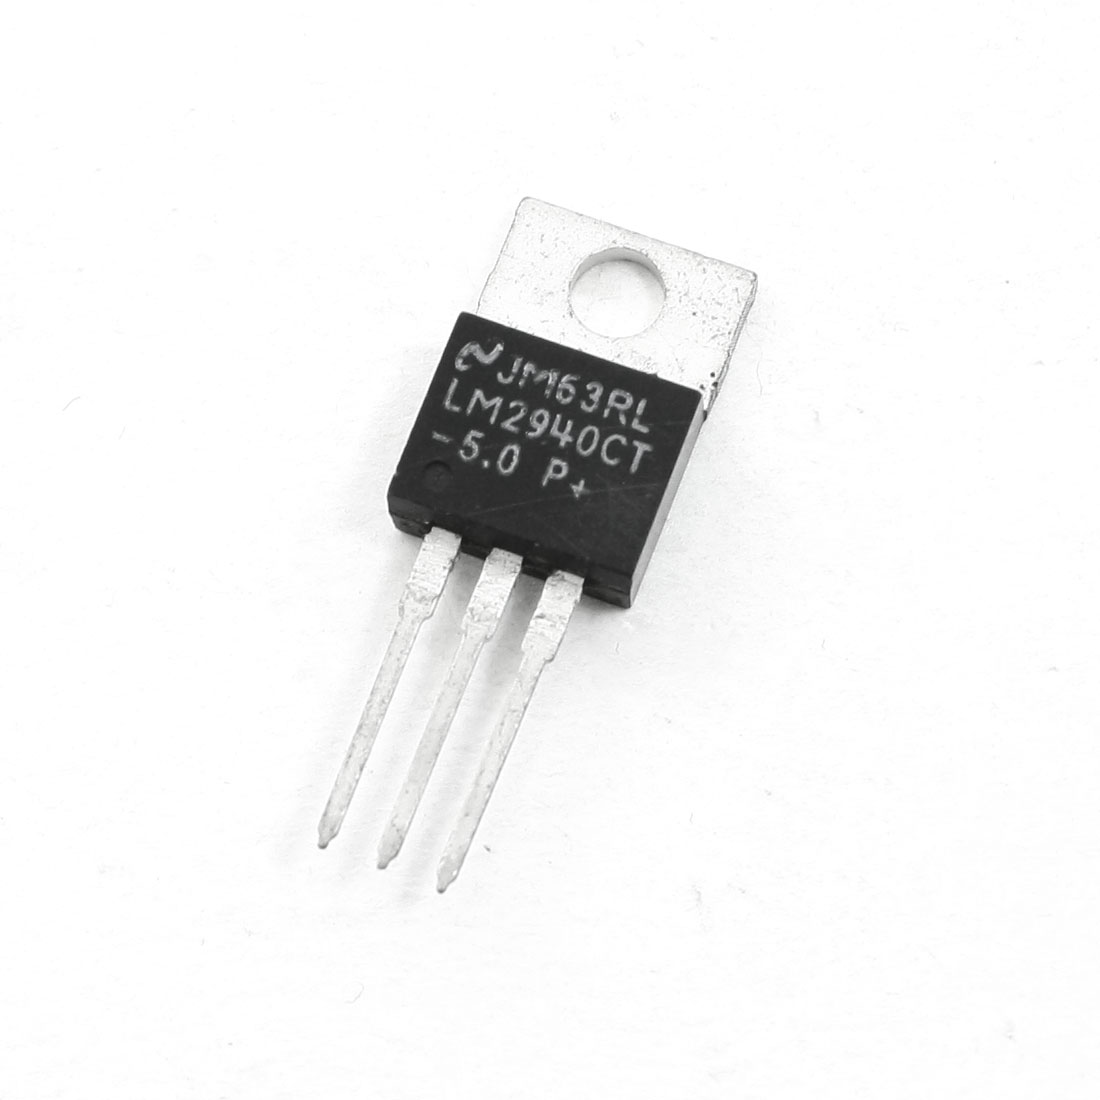 LM2940CT 5V 1Amp High Switching Speed Silicon Transistor